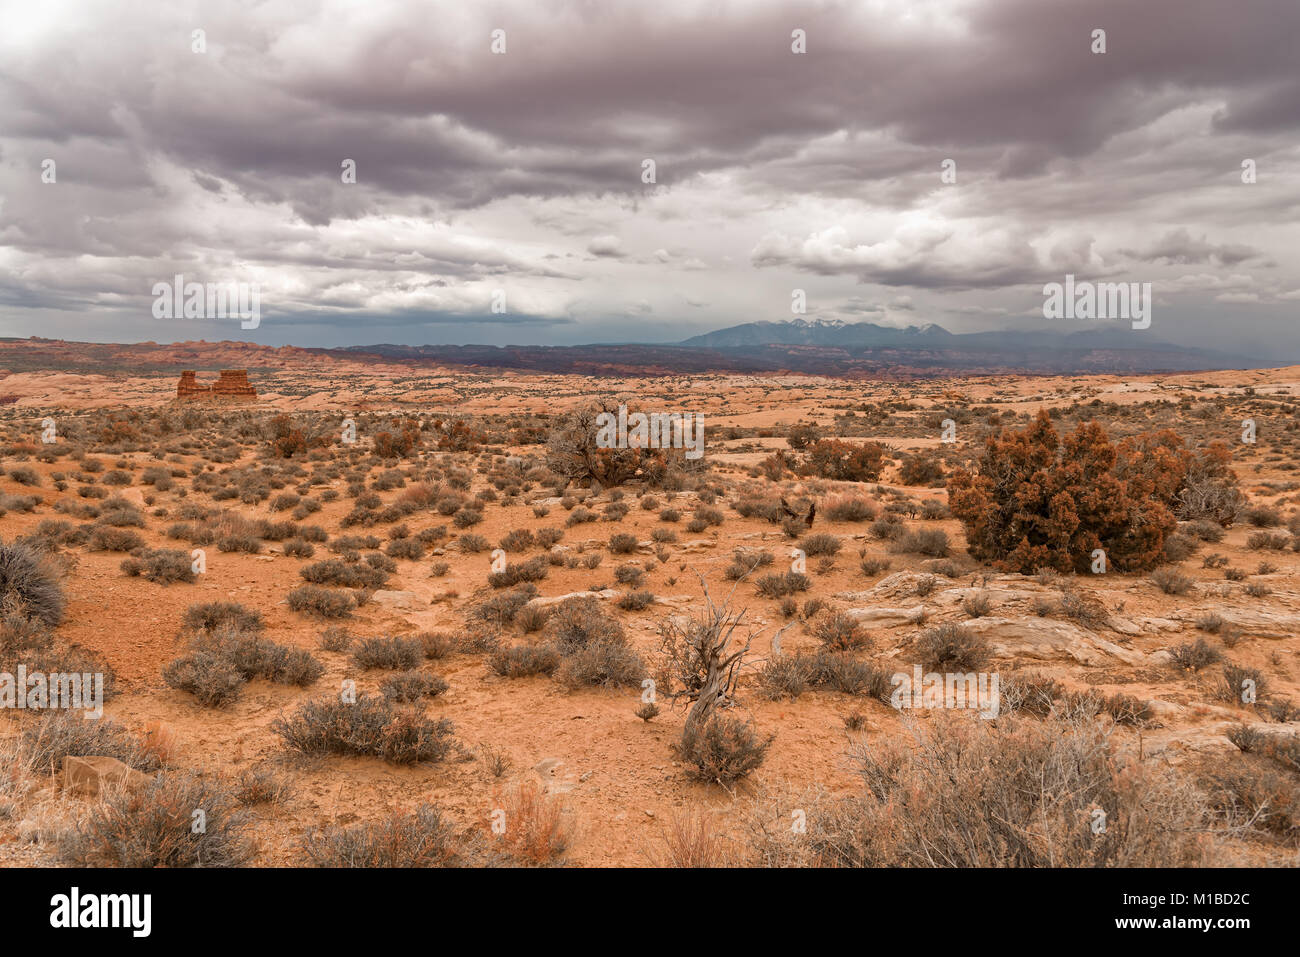 Landscape a look on the rocks of the Arches National Park. It's home to over 2,000 natural sandstone arches. - Stock Image